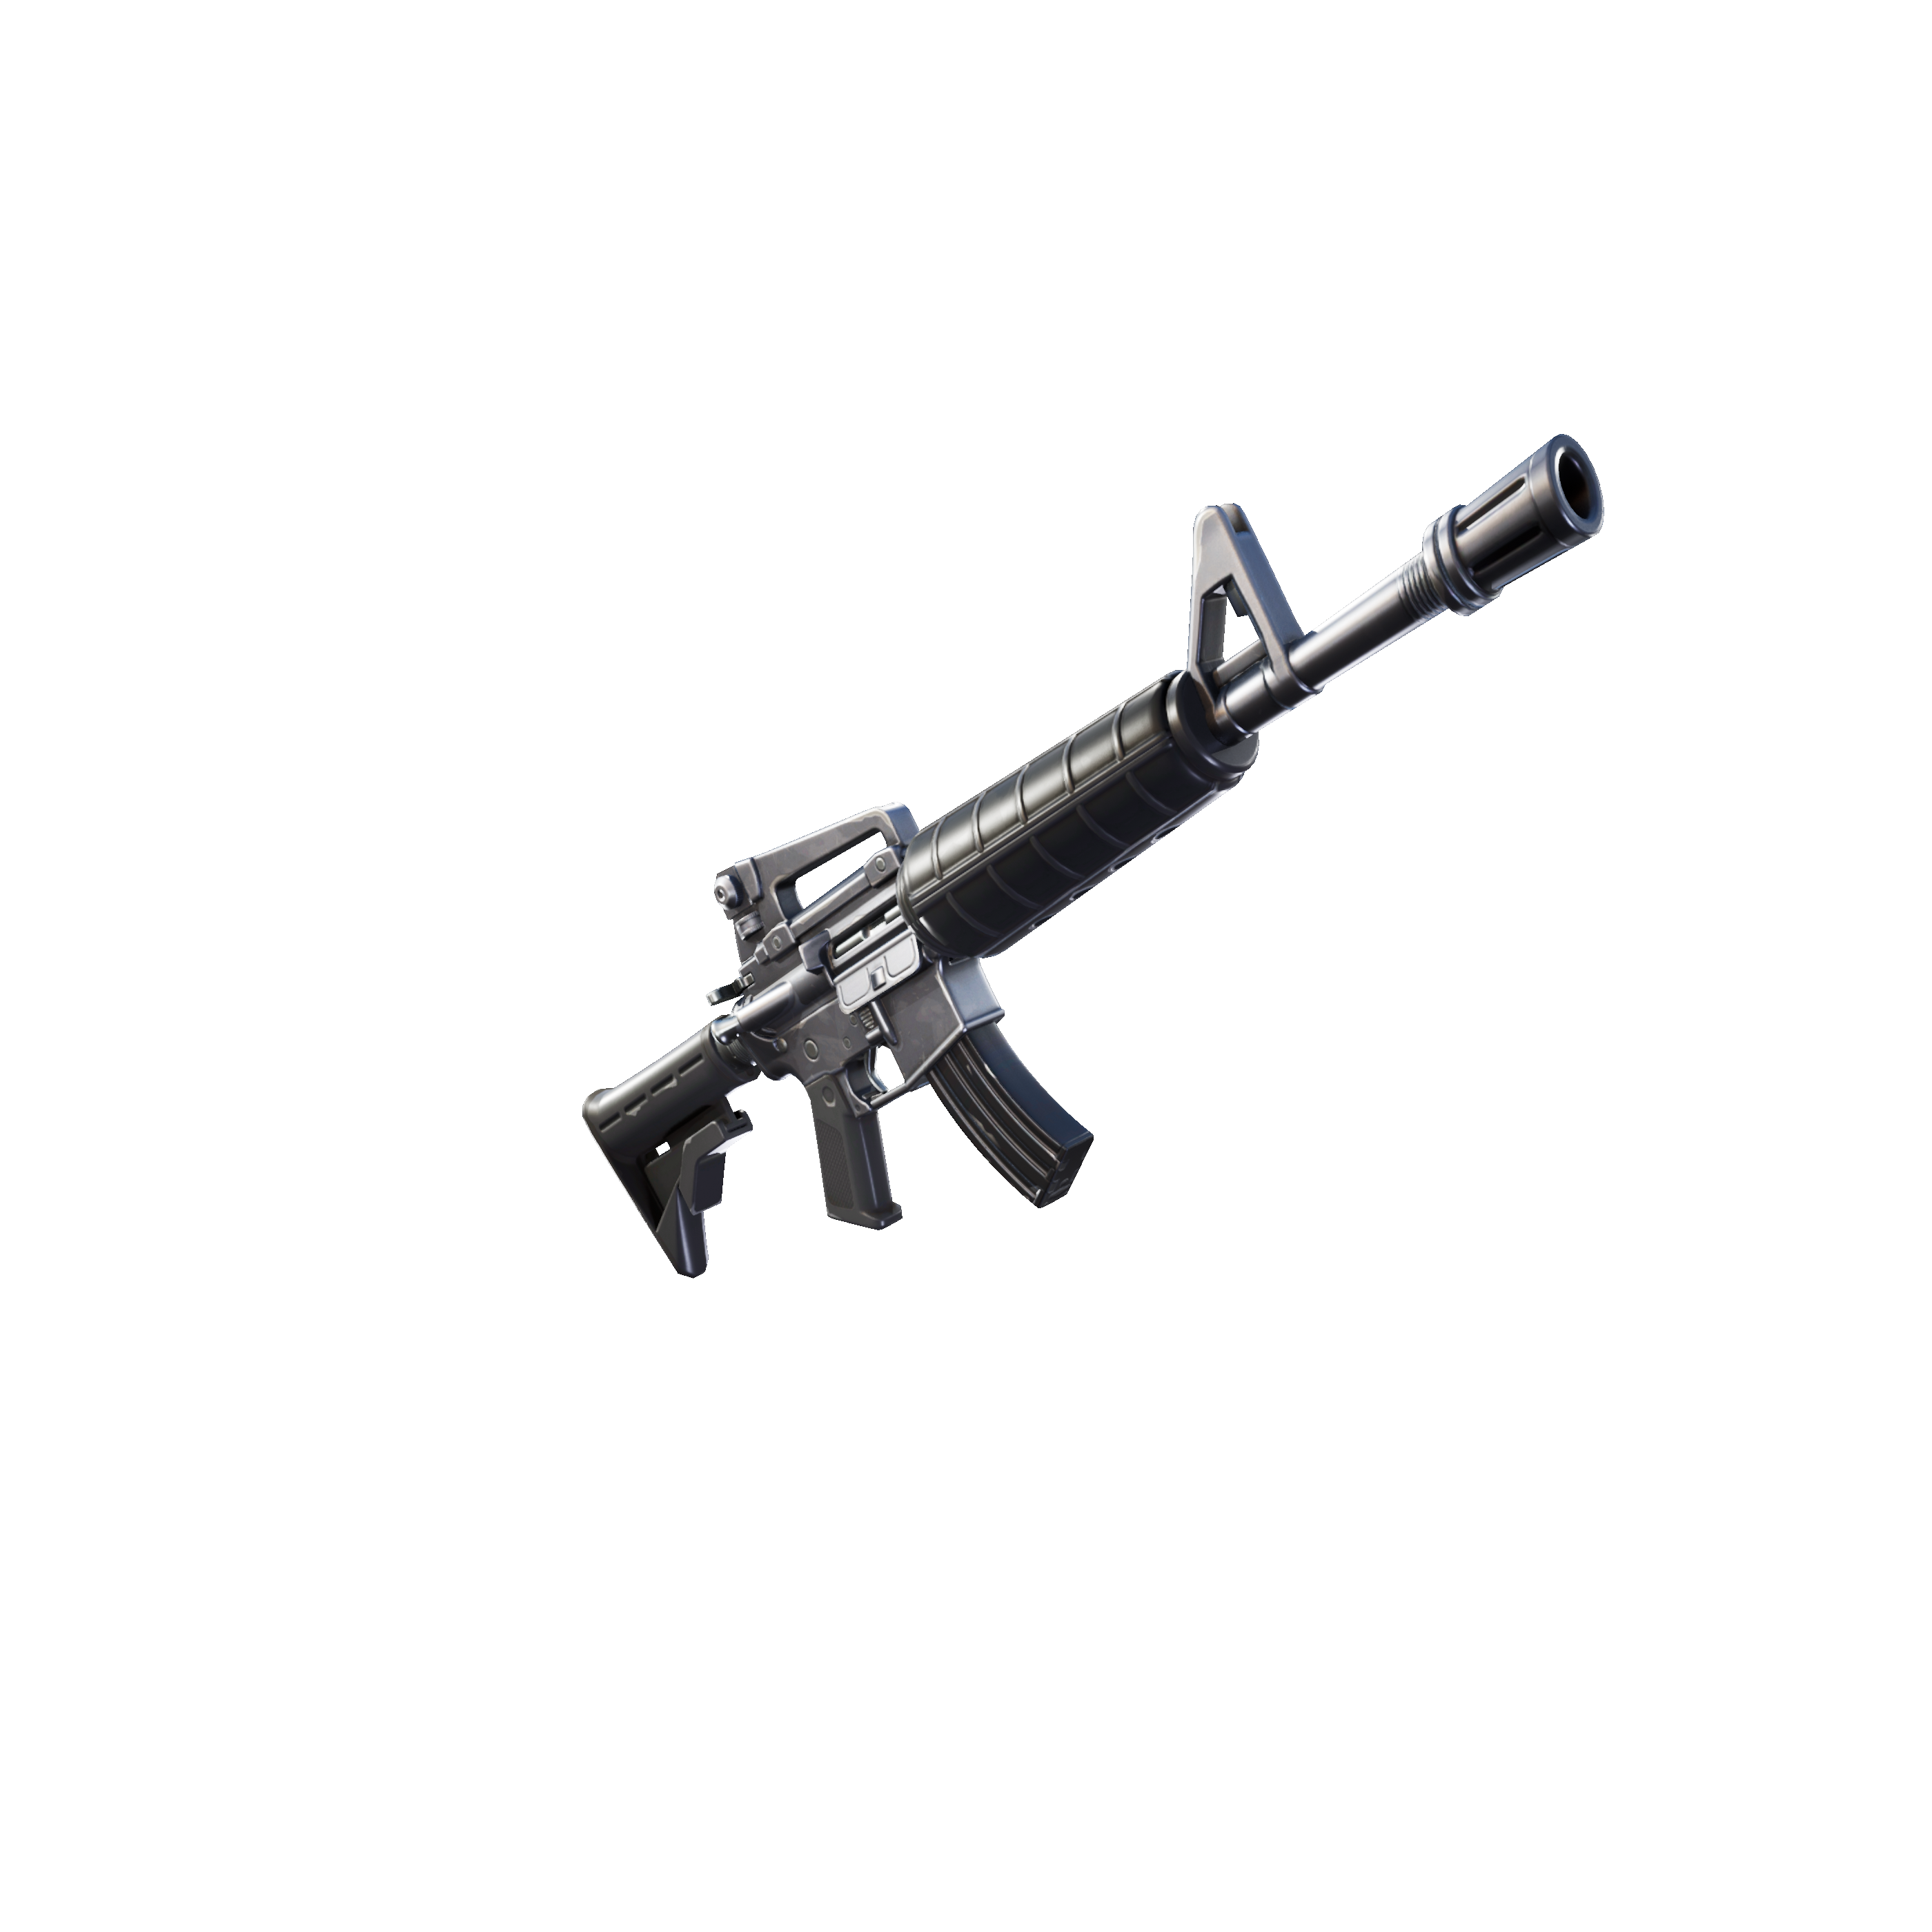 Fortnite Season 3 Weapons Guide